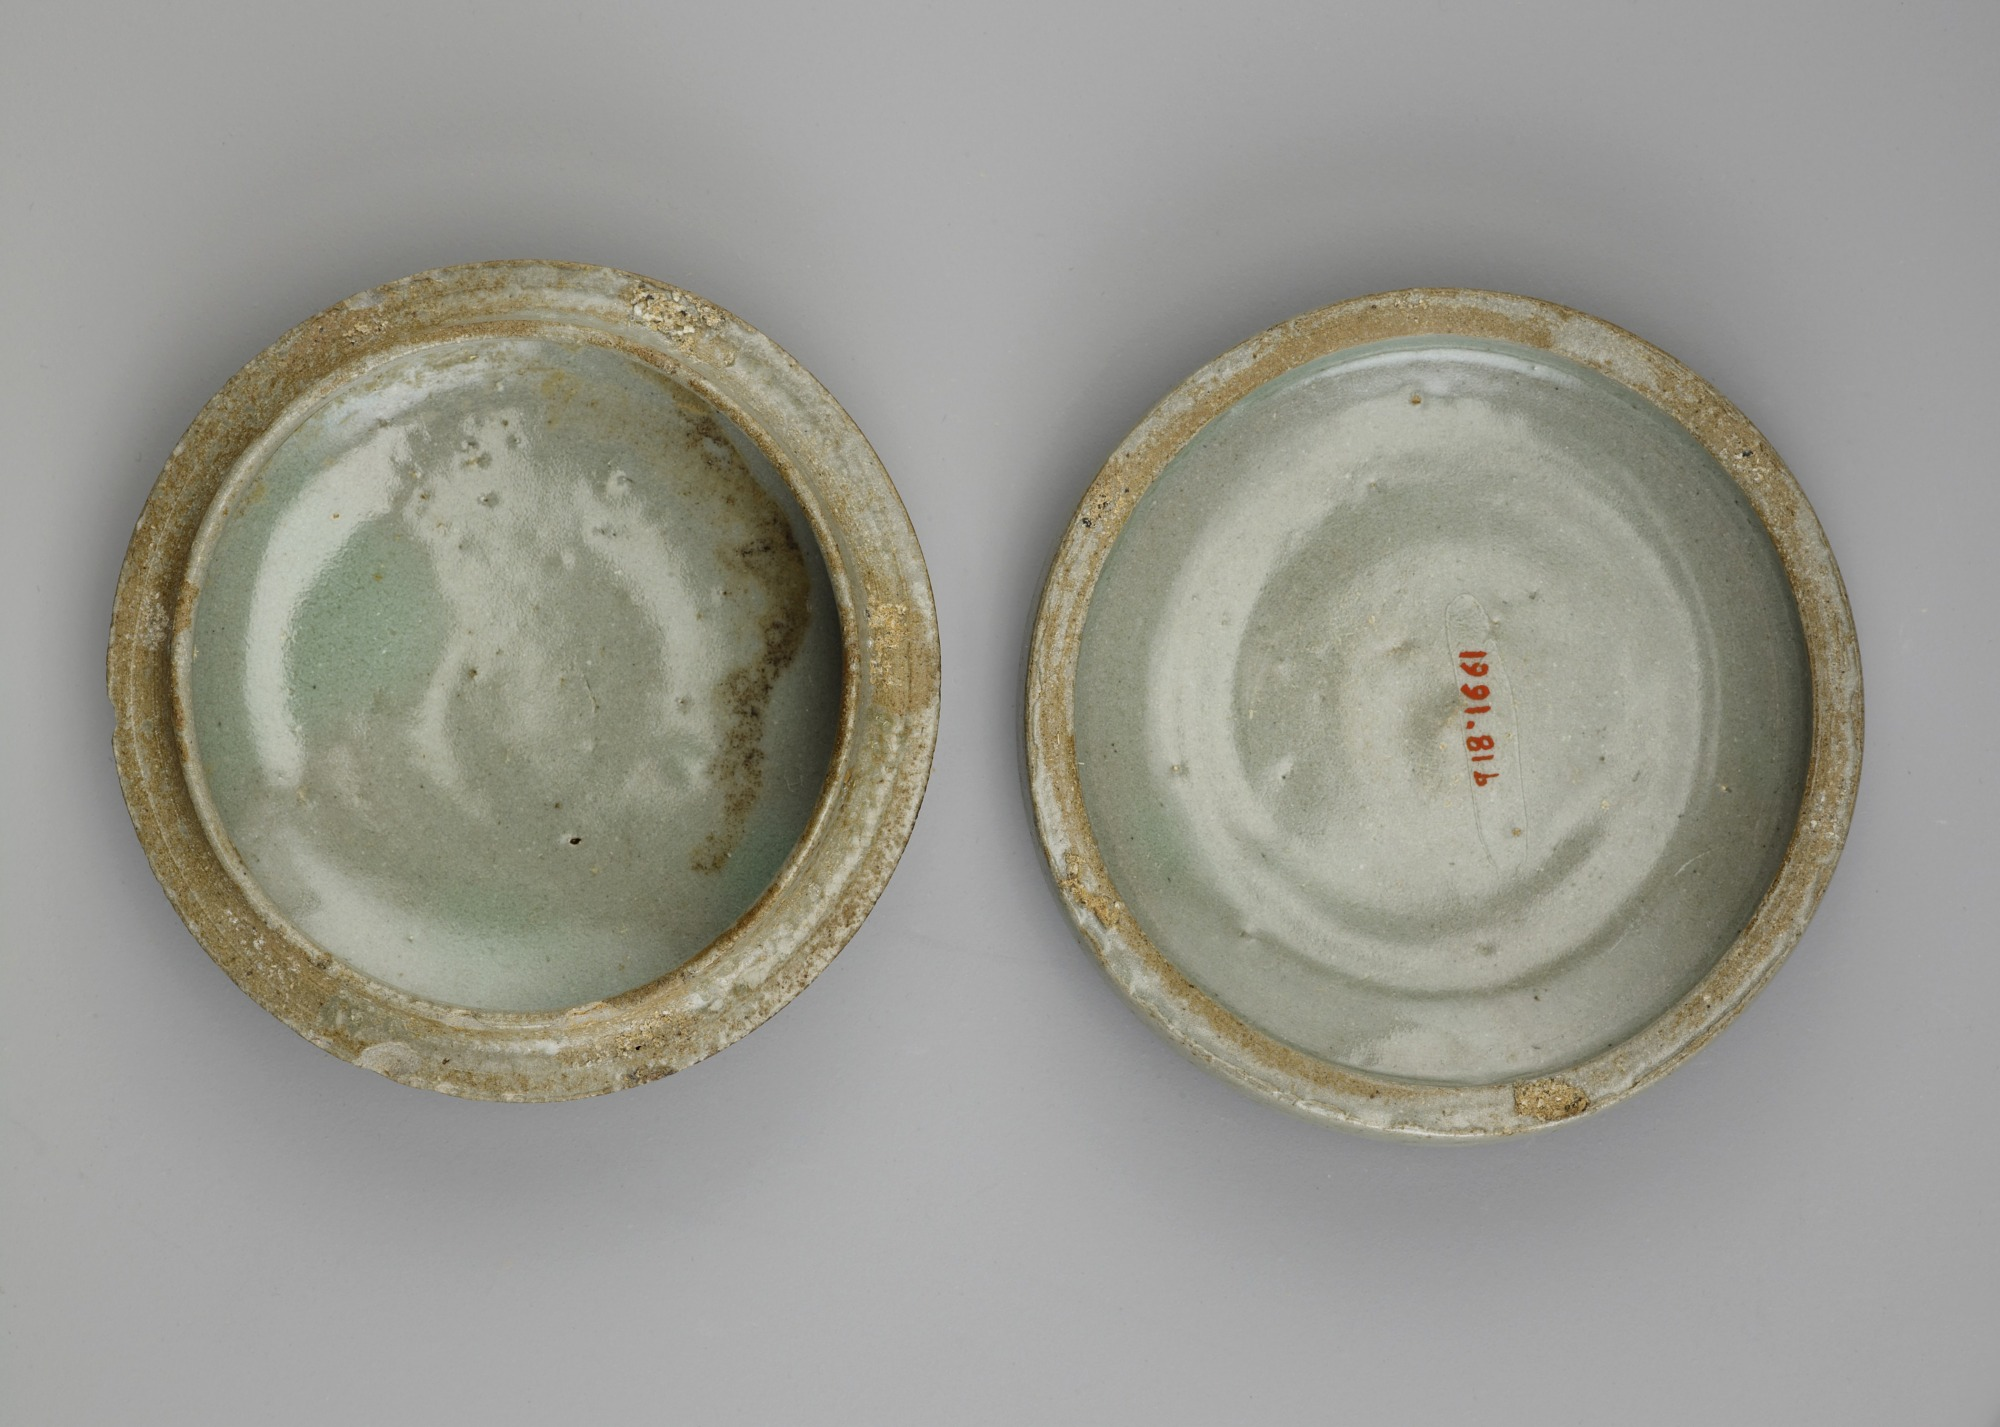 inside lid and interior